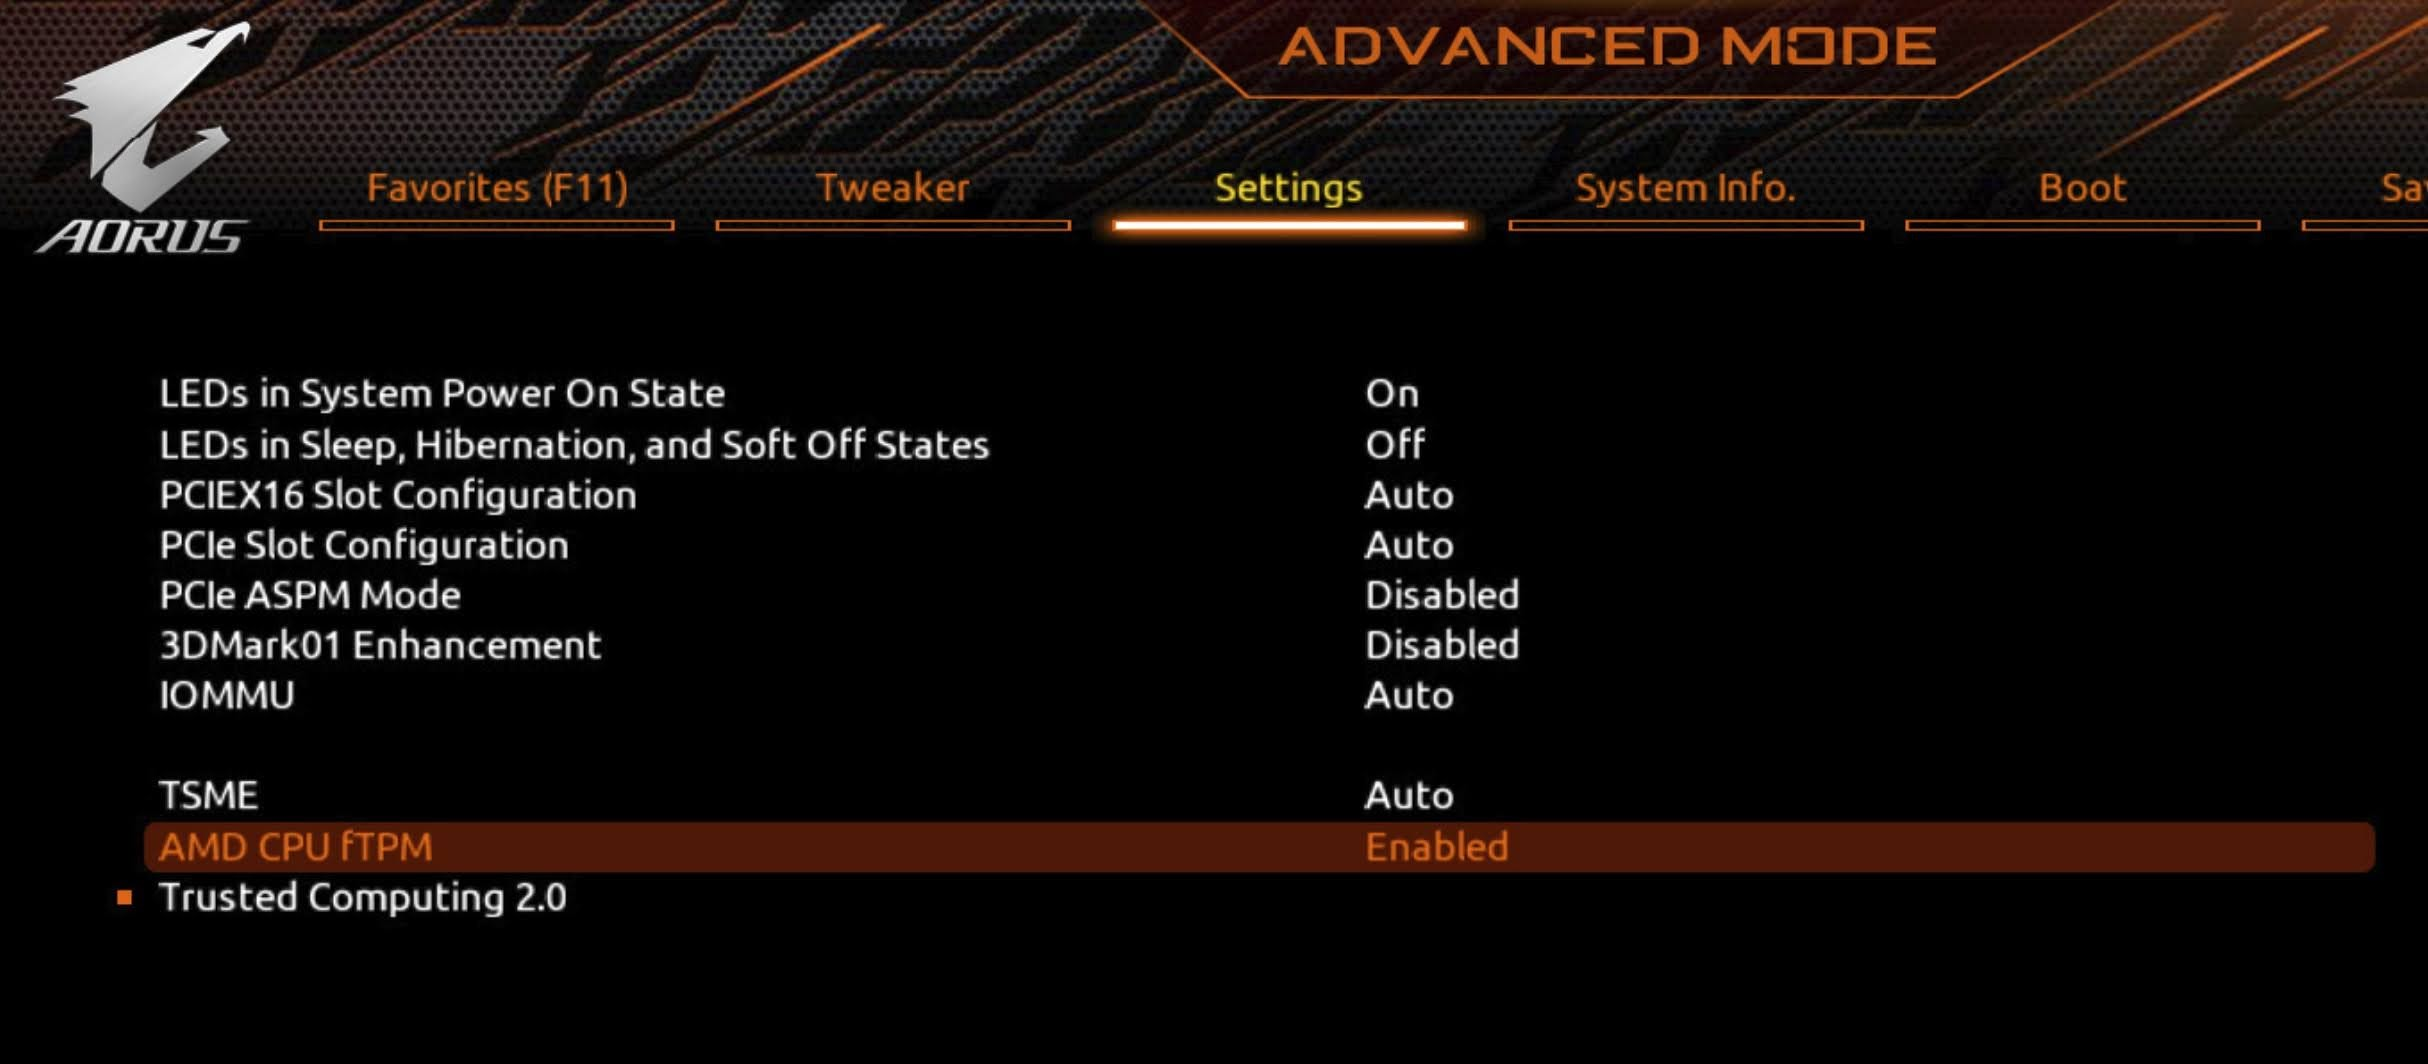 Enable TPM 2.0 for GIGABYTE motherboard using AORUS: For AMD processor, locate AMD CPU fTPM option and select Enable from the drop-down menu.